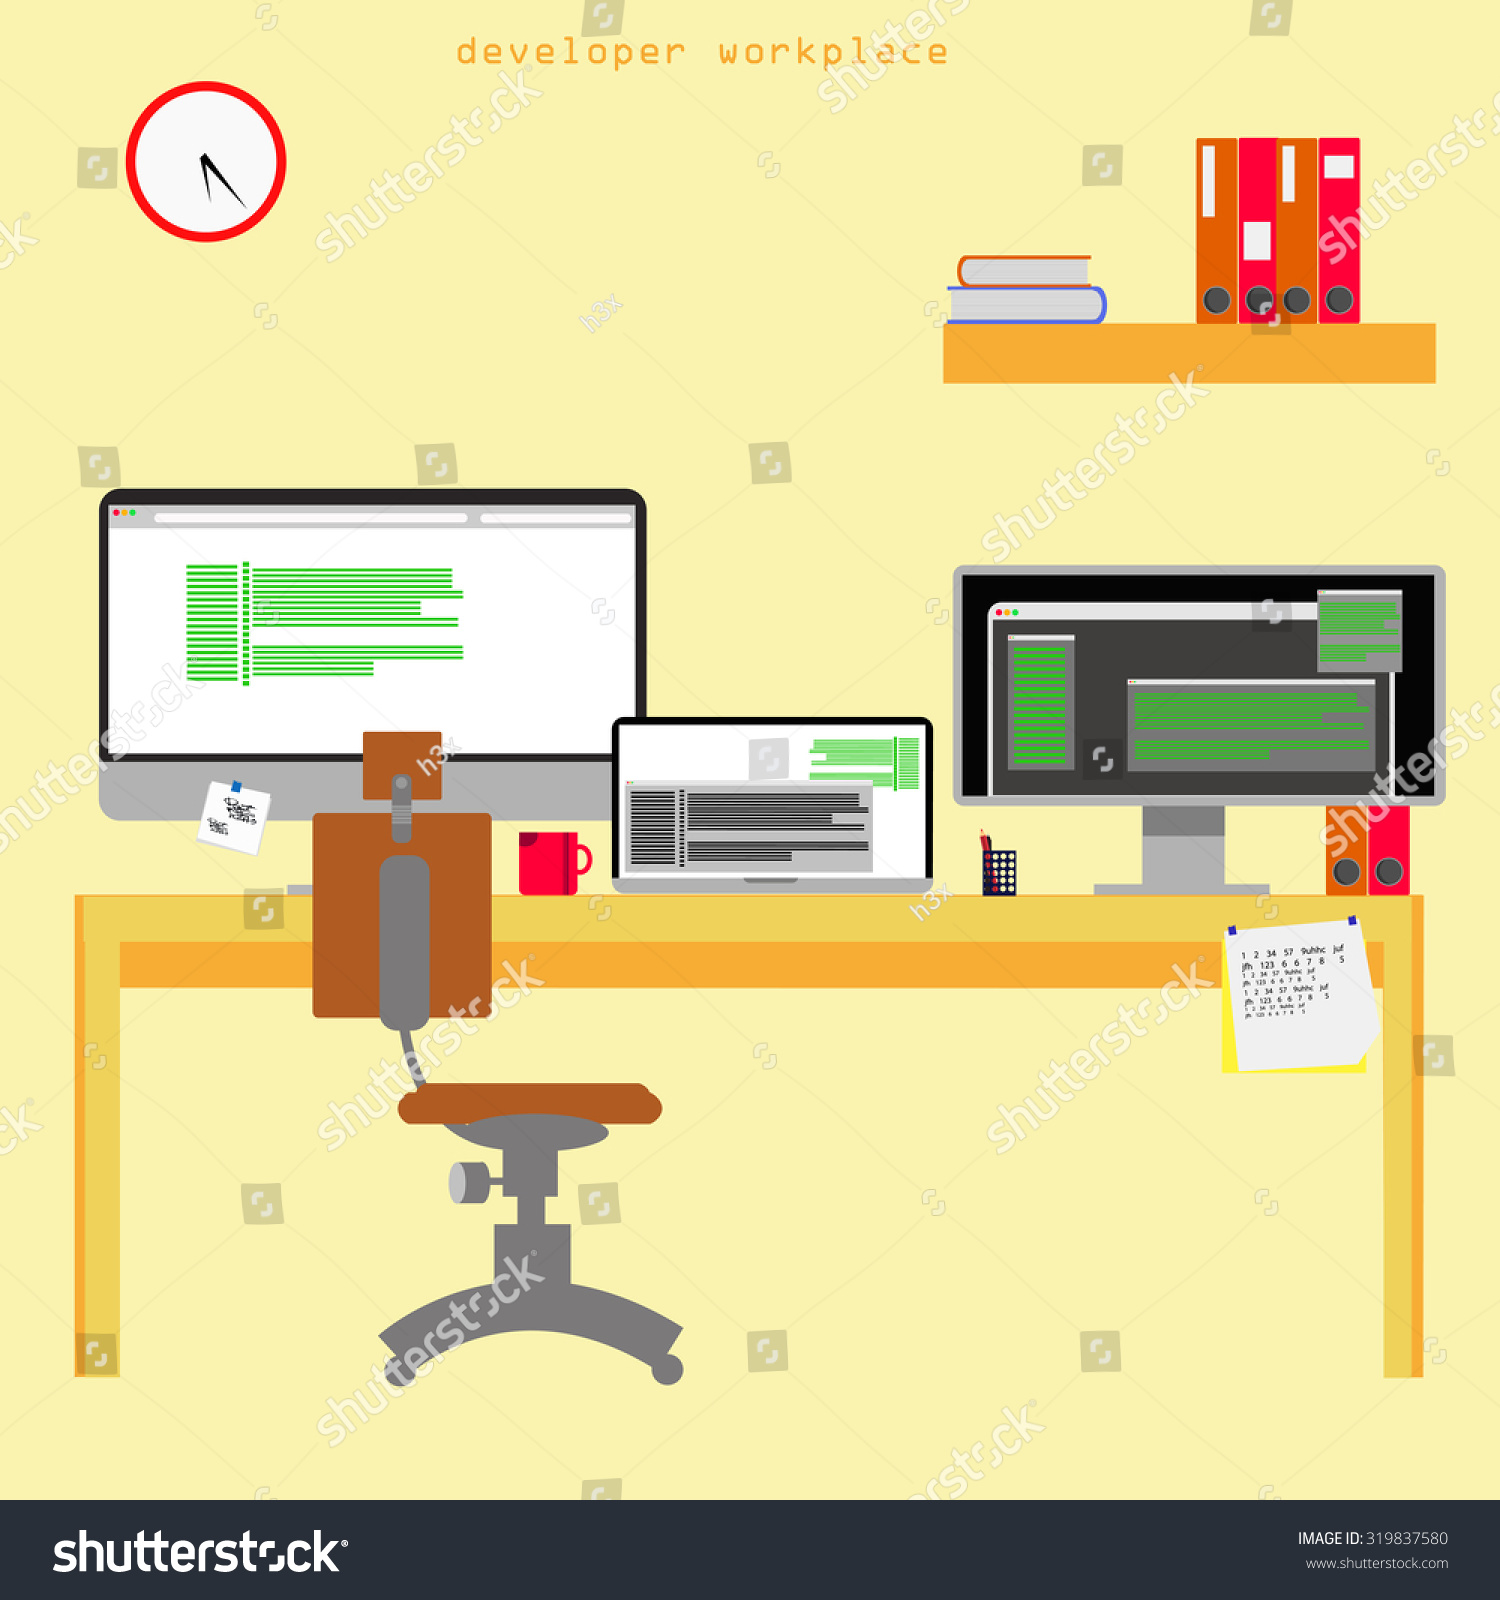 home office items. Home Office Vector Illustration On Yellow Background. Cute Cartoon Items. Programmer Work Place. Items